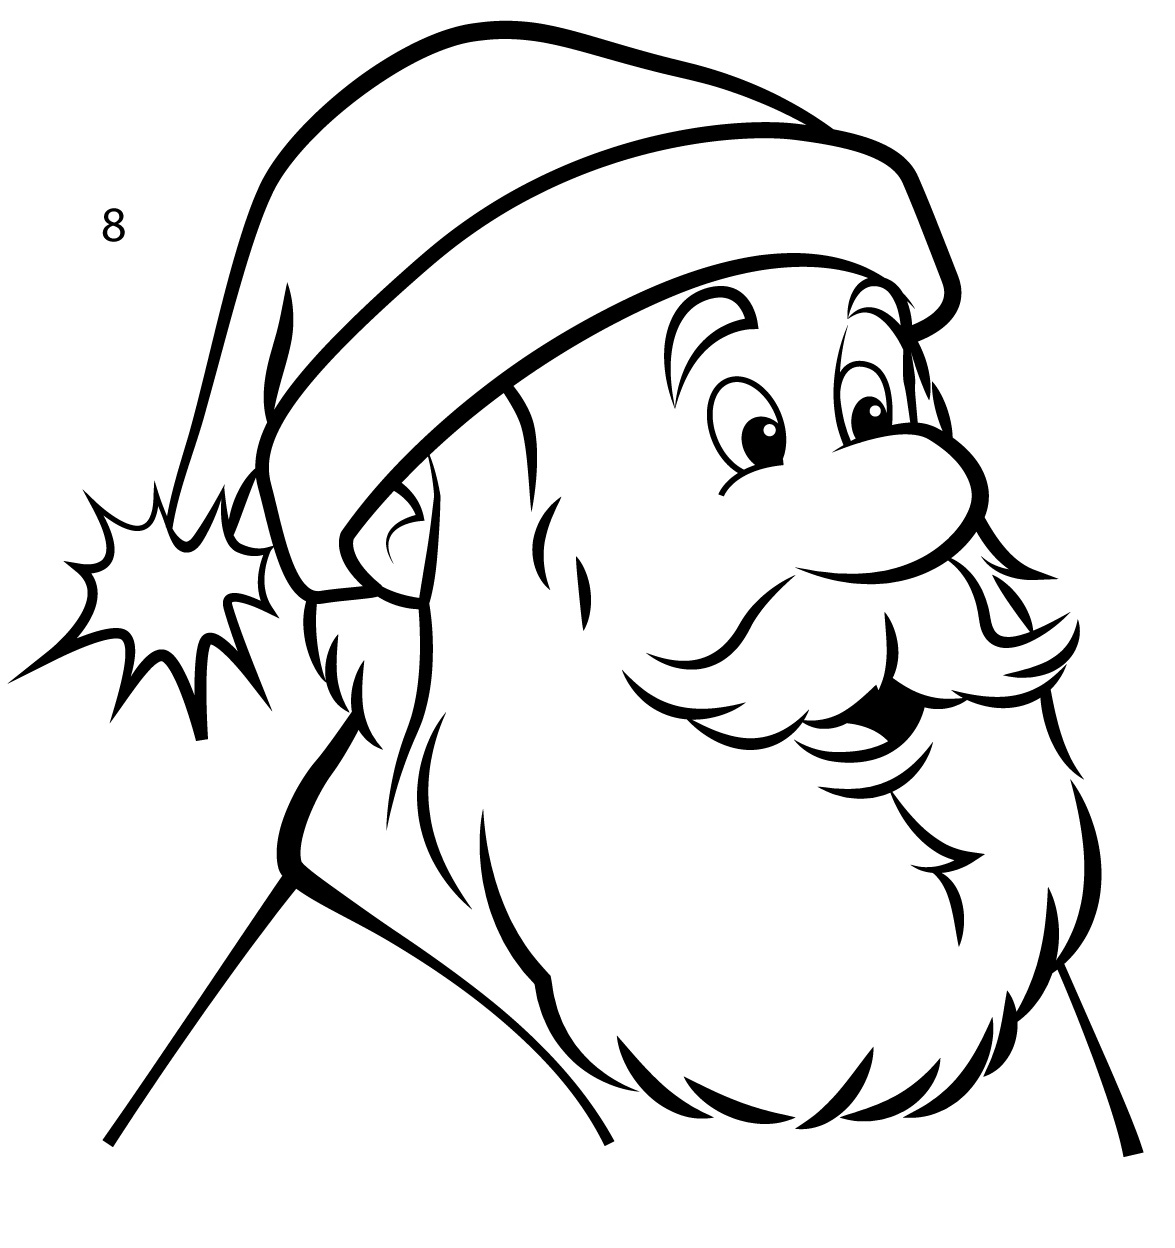 How To Draw Santa Claus In 8 Easy Steps